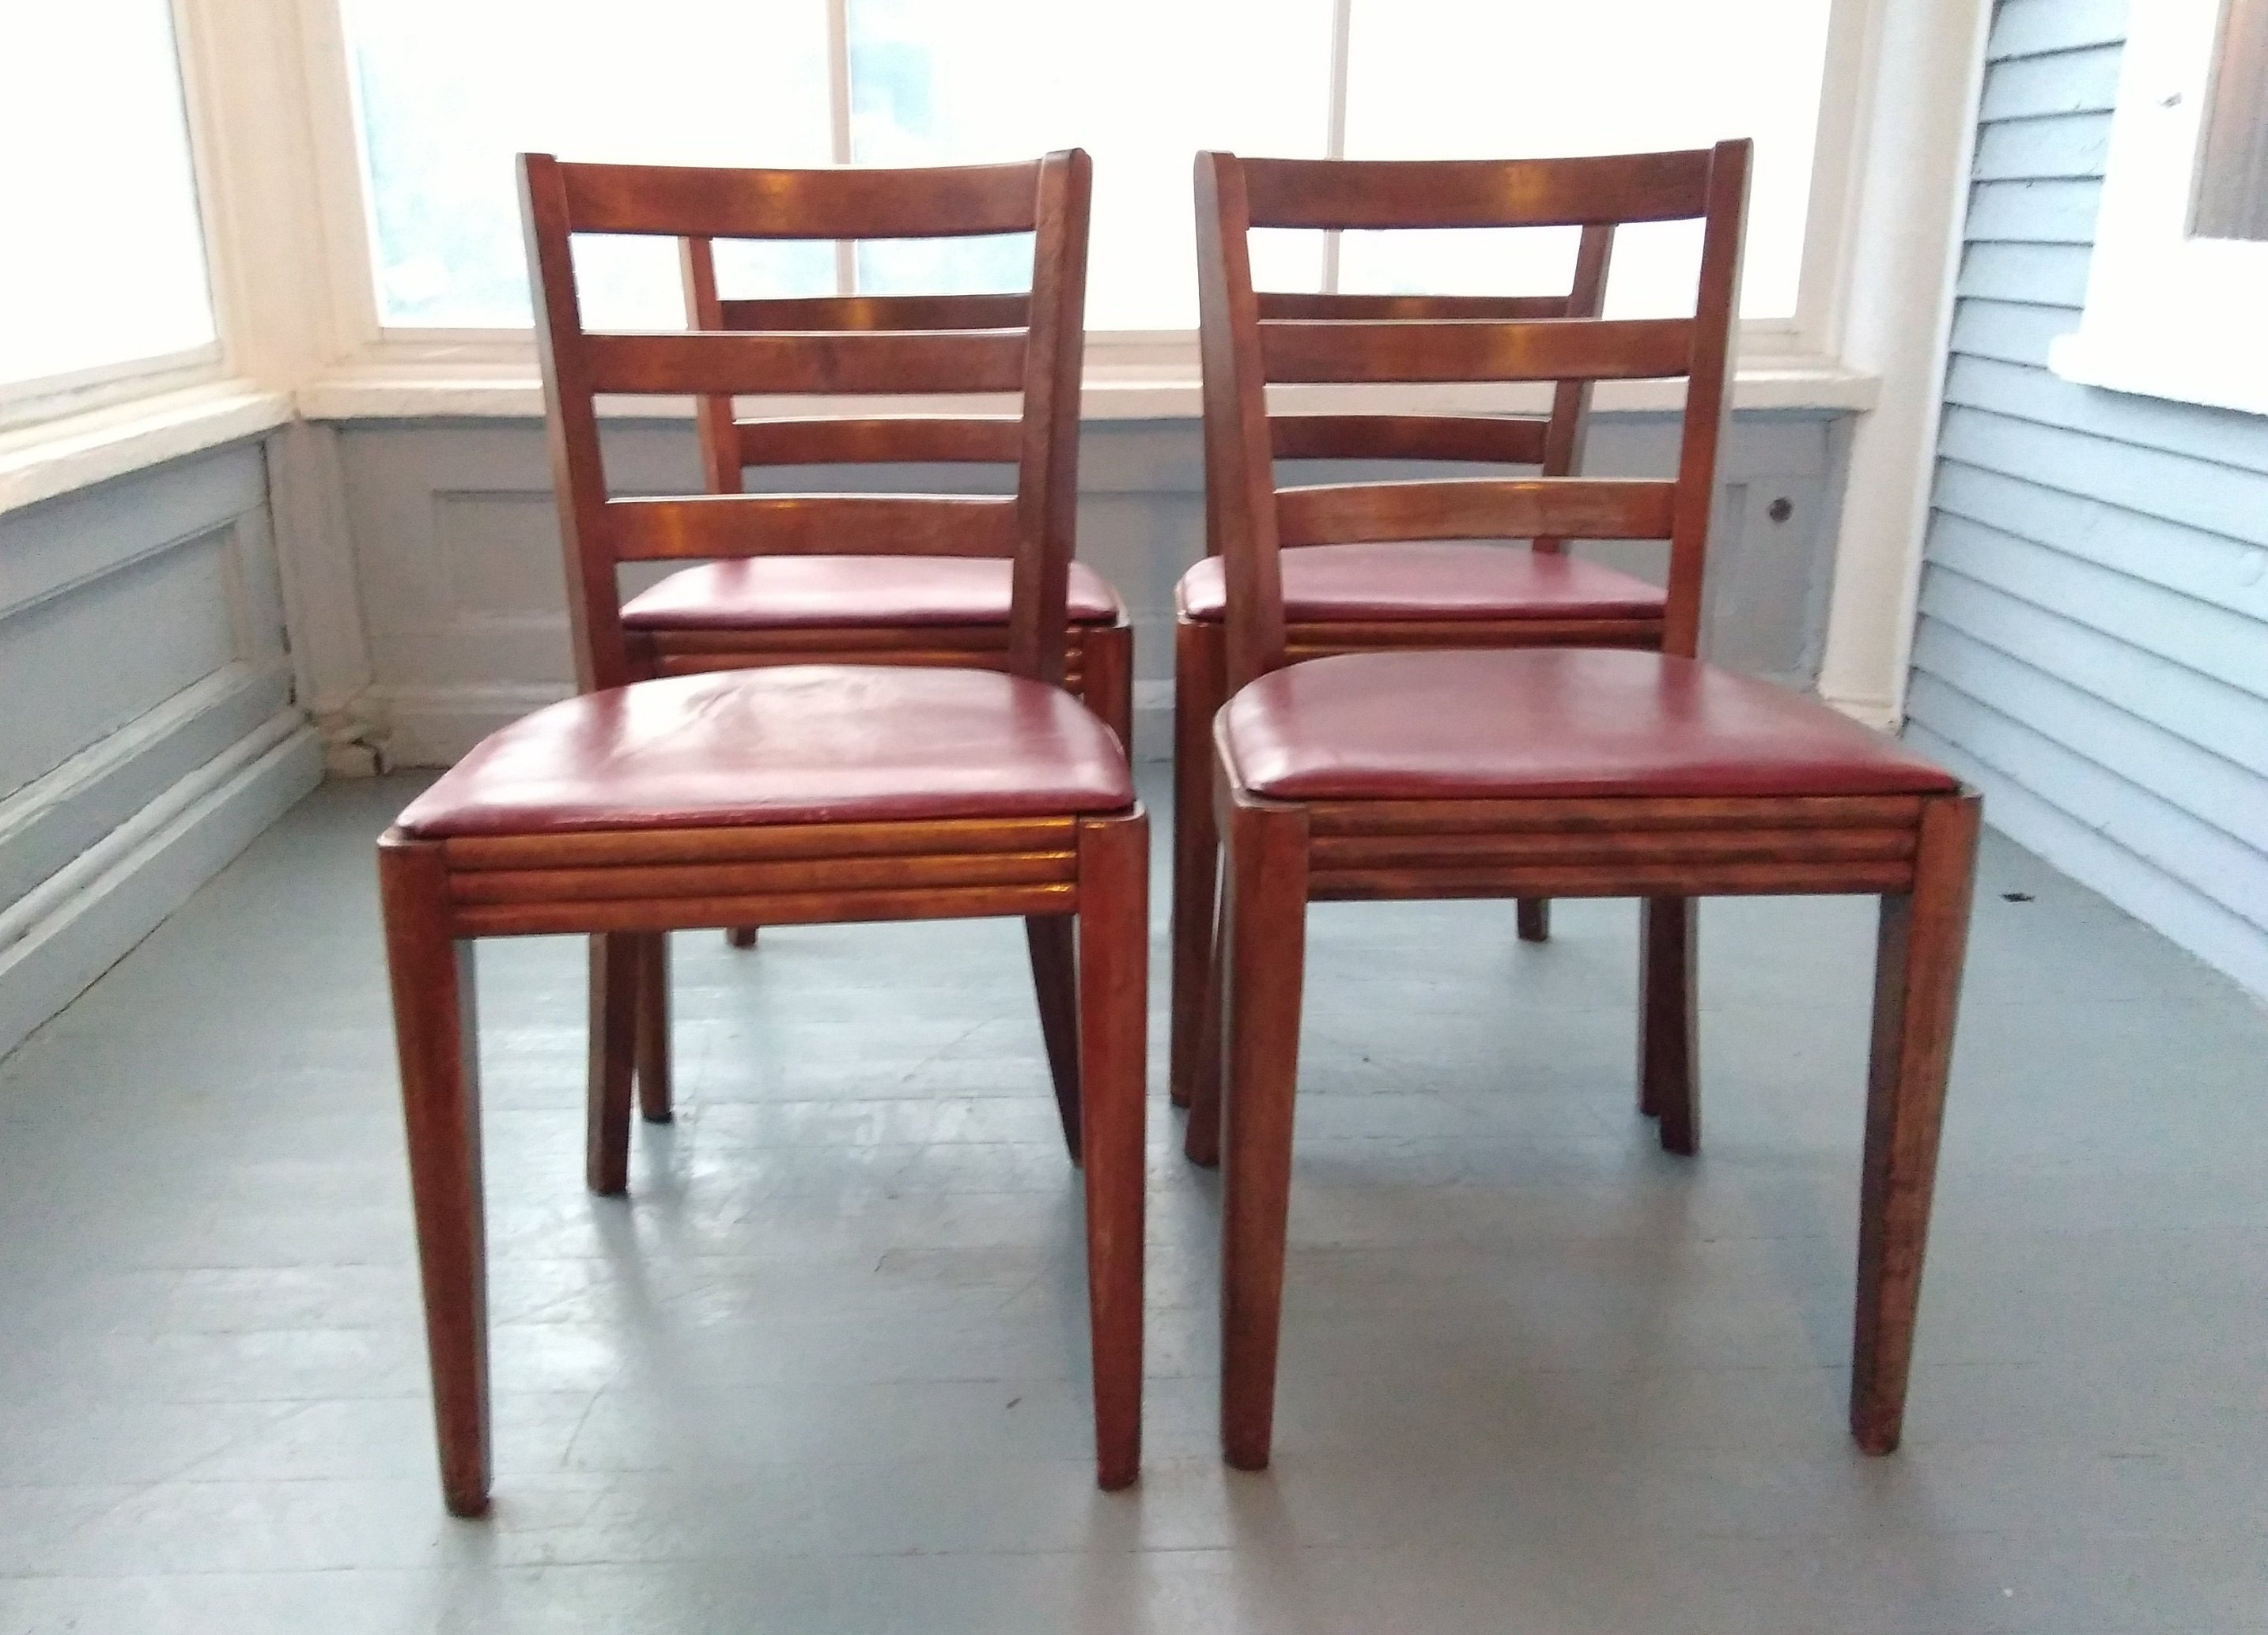 Phenomenal Set Of Four Wood Dining Chairs Danish Modern Mid Century Ncnpc Chair Design For Home Ncnpcorg